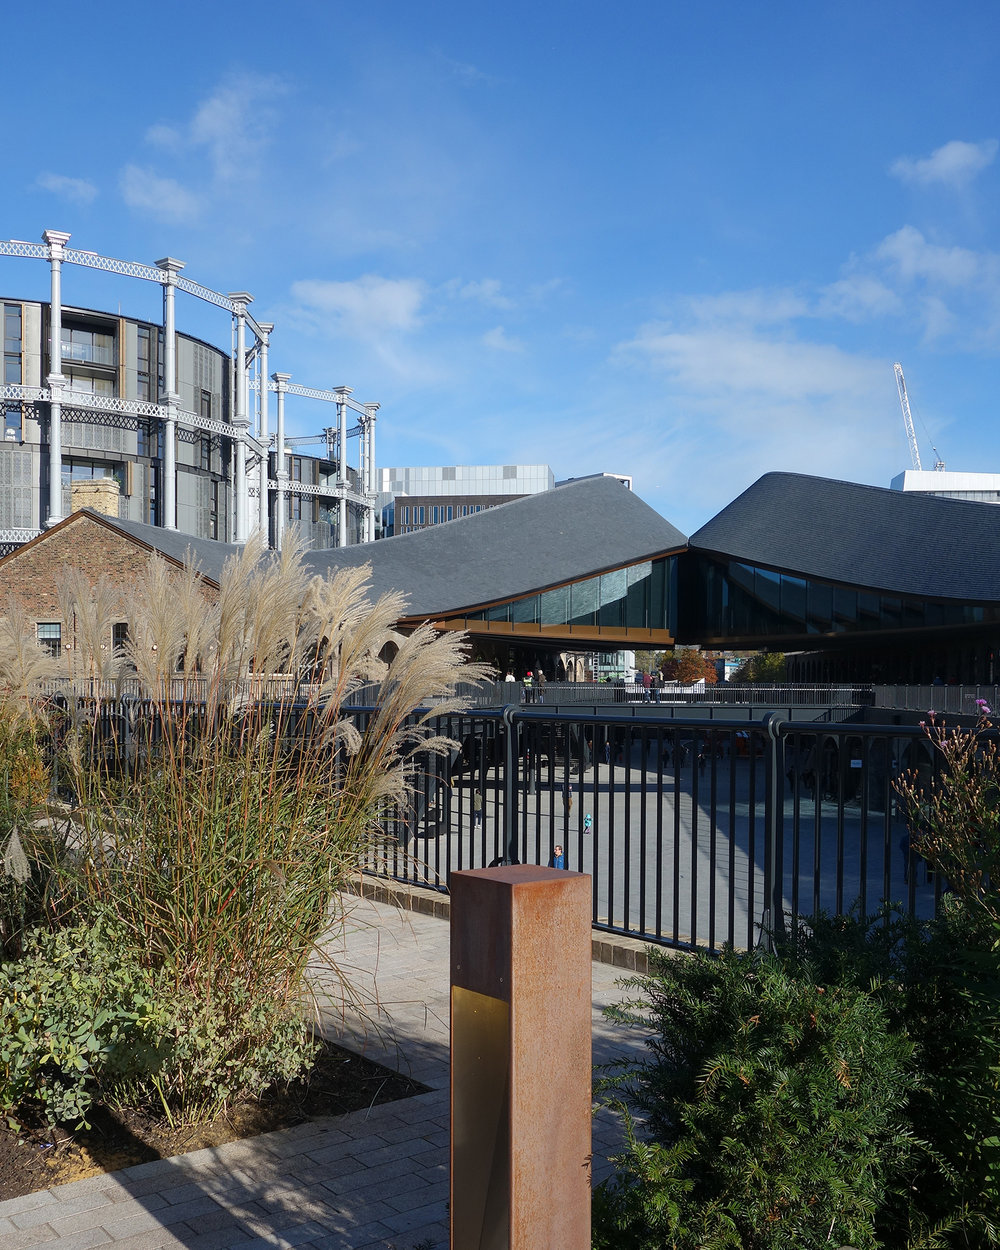 Coal Drops Yard From the Land